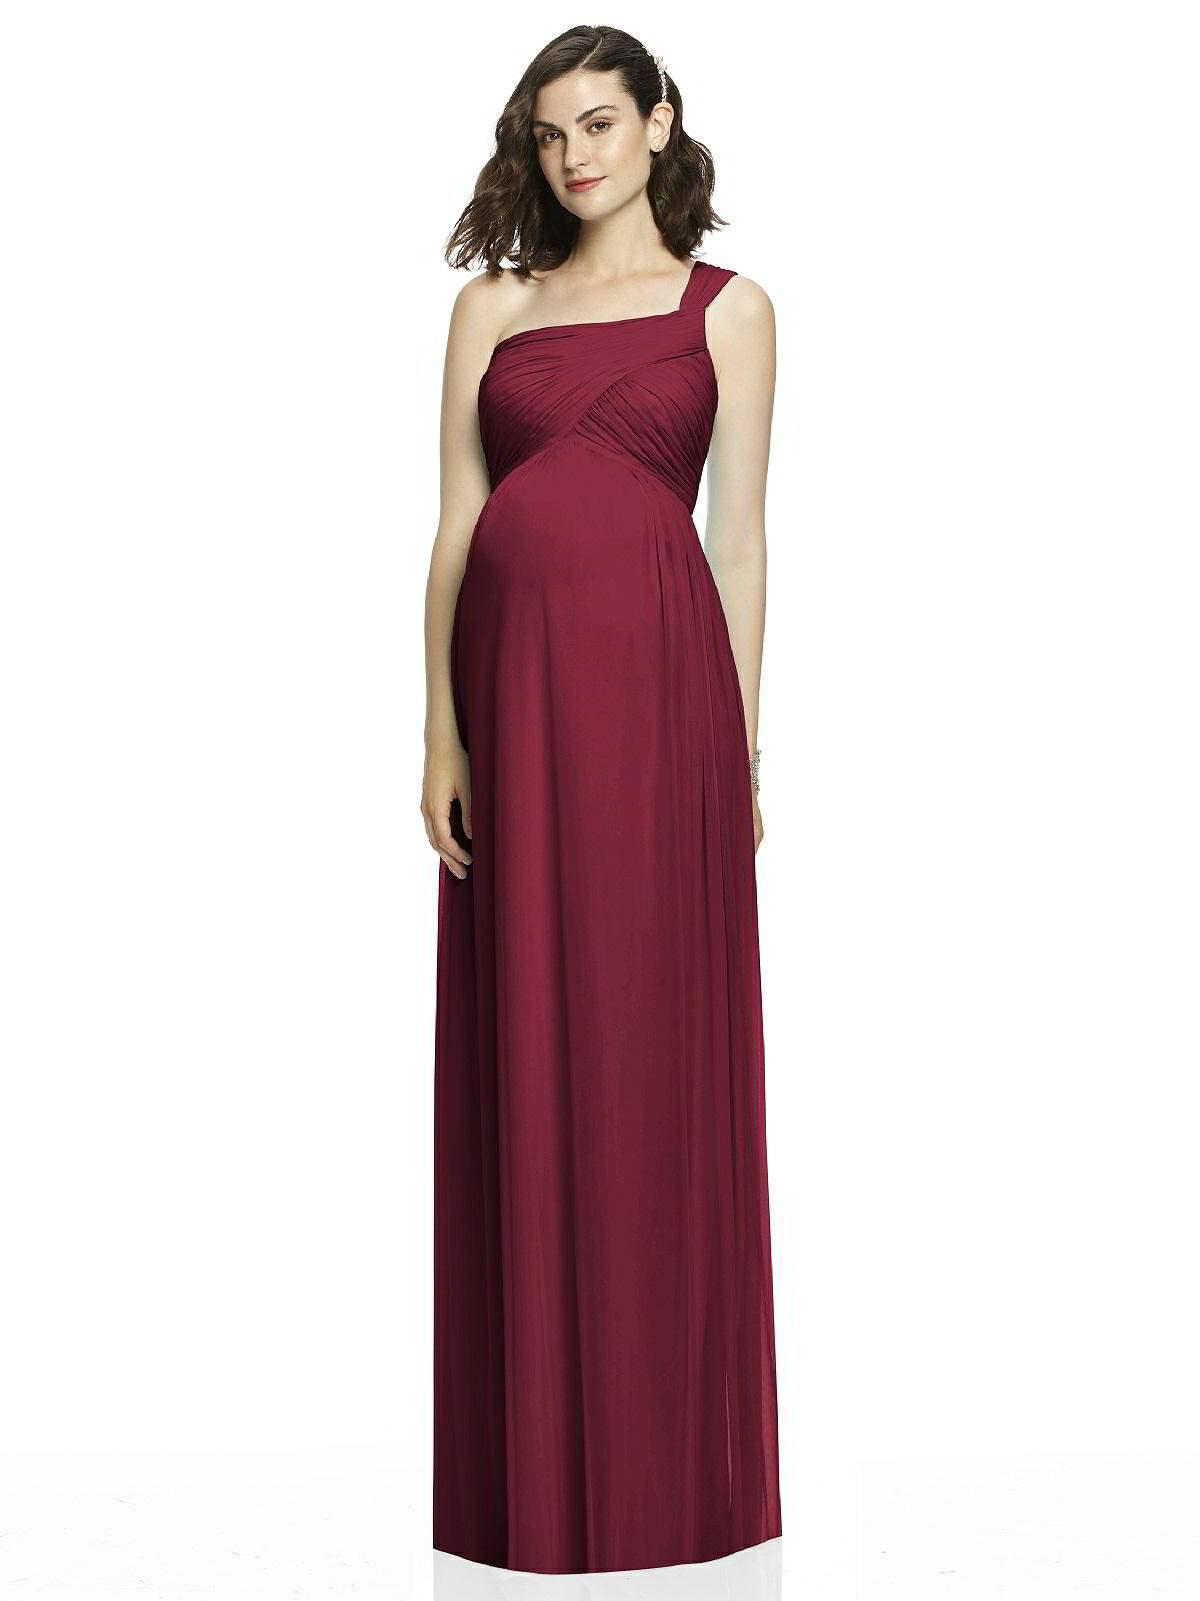 Maternity bridesmaid dresses instyle ombrellifo Image collections